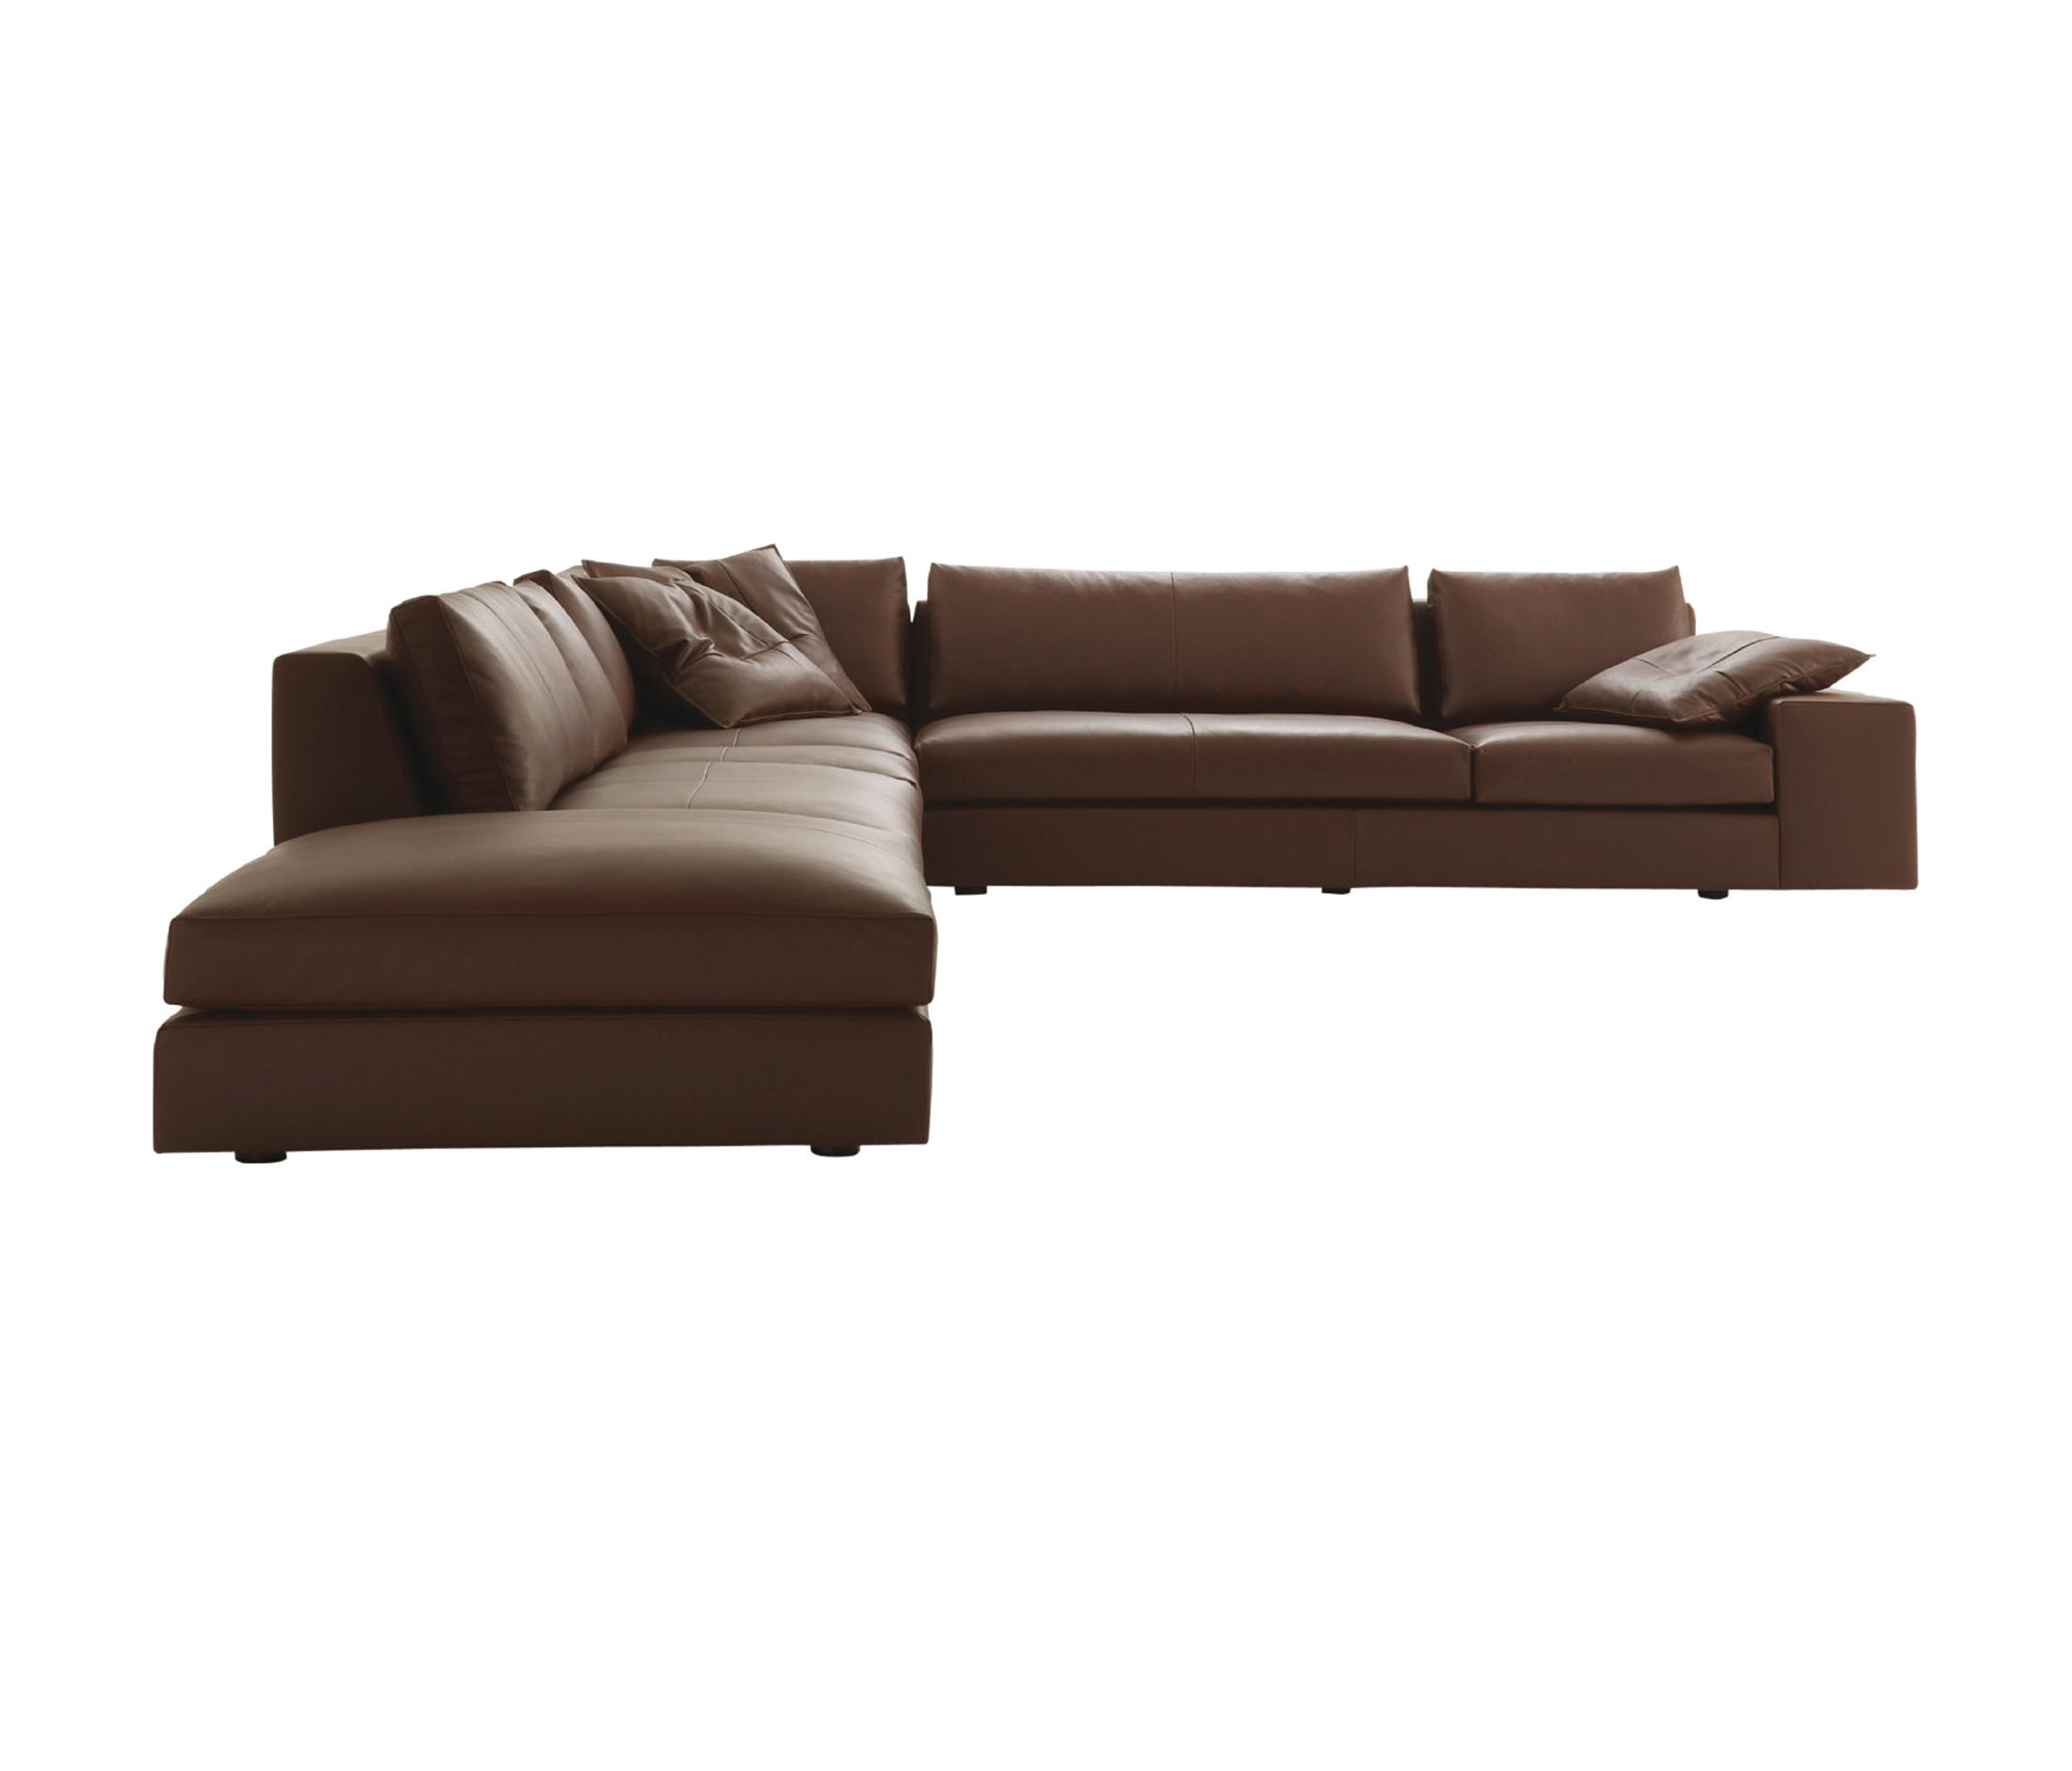 exclusif lounge sofas from ligne roset architonic. Black Bedroom Furniture Sets. Home Design Ideas